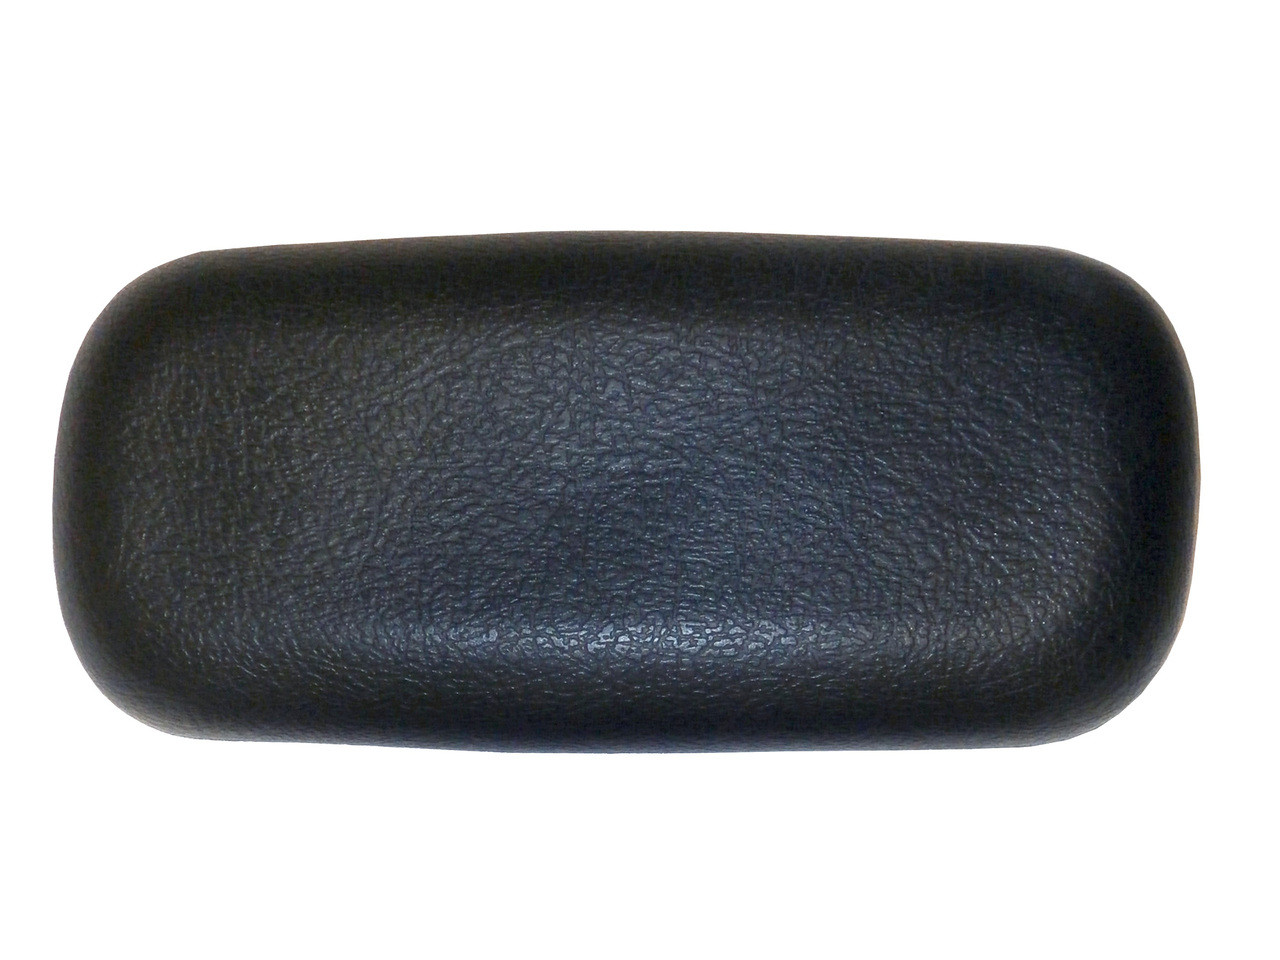 Master Spa - X540718 - Spa Pillow - Legacy Series Black Pillow Starting in 2007 - Front View